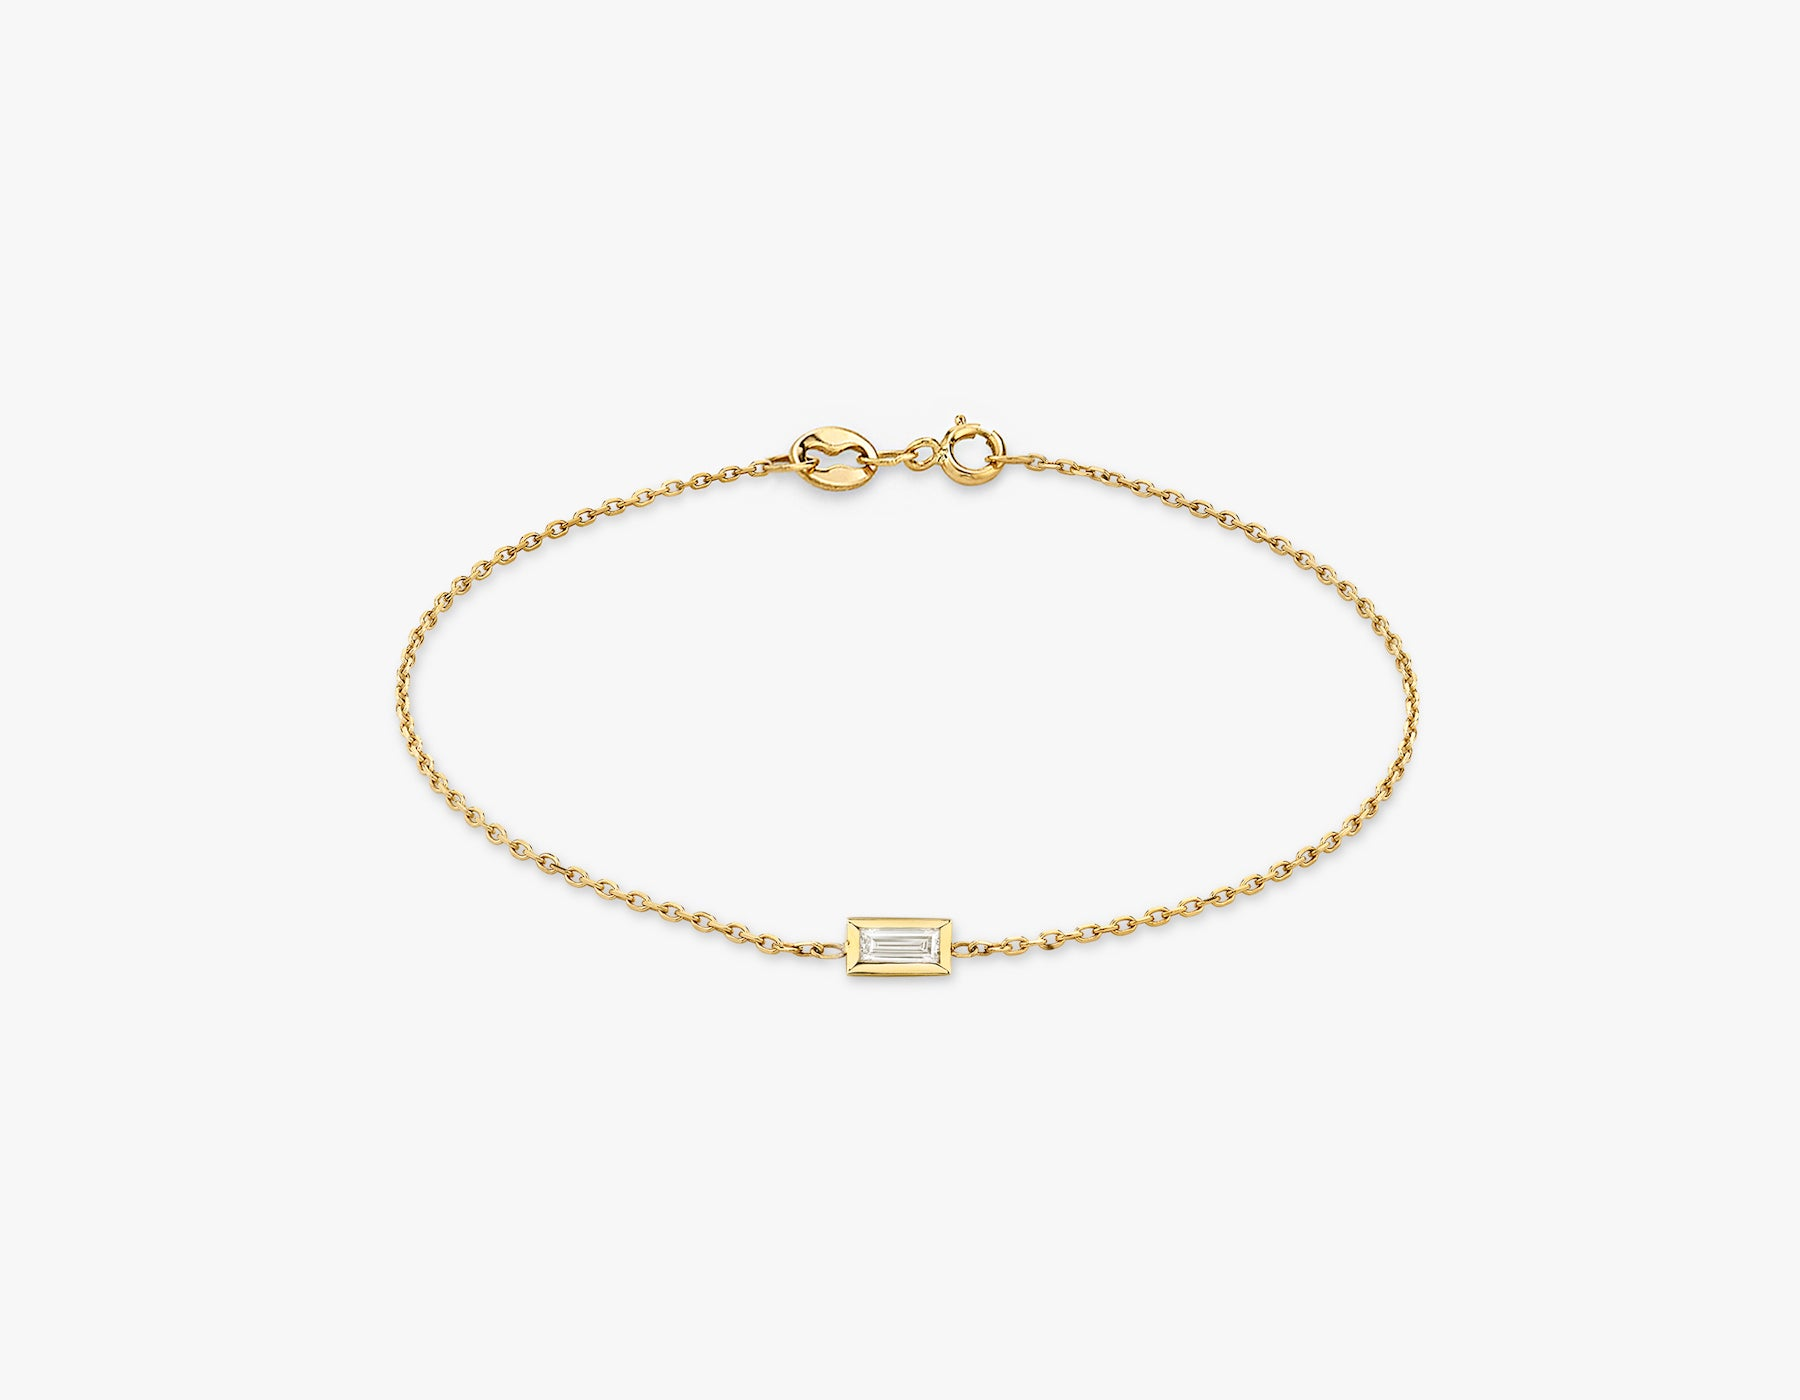 Vrai simple minimalist Baguette Diamond Bezel Bracelet, 14K Yellow Gold